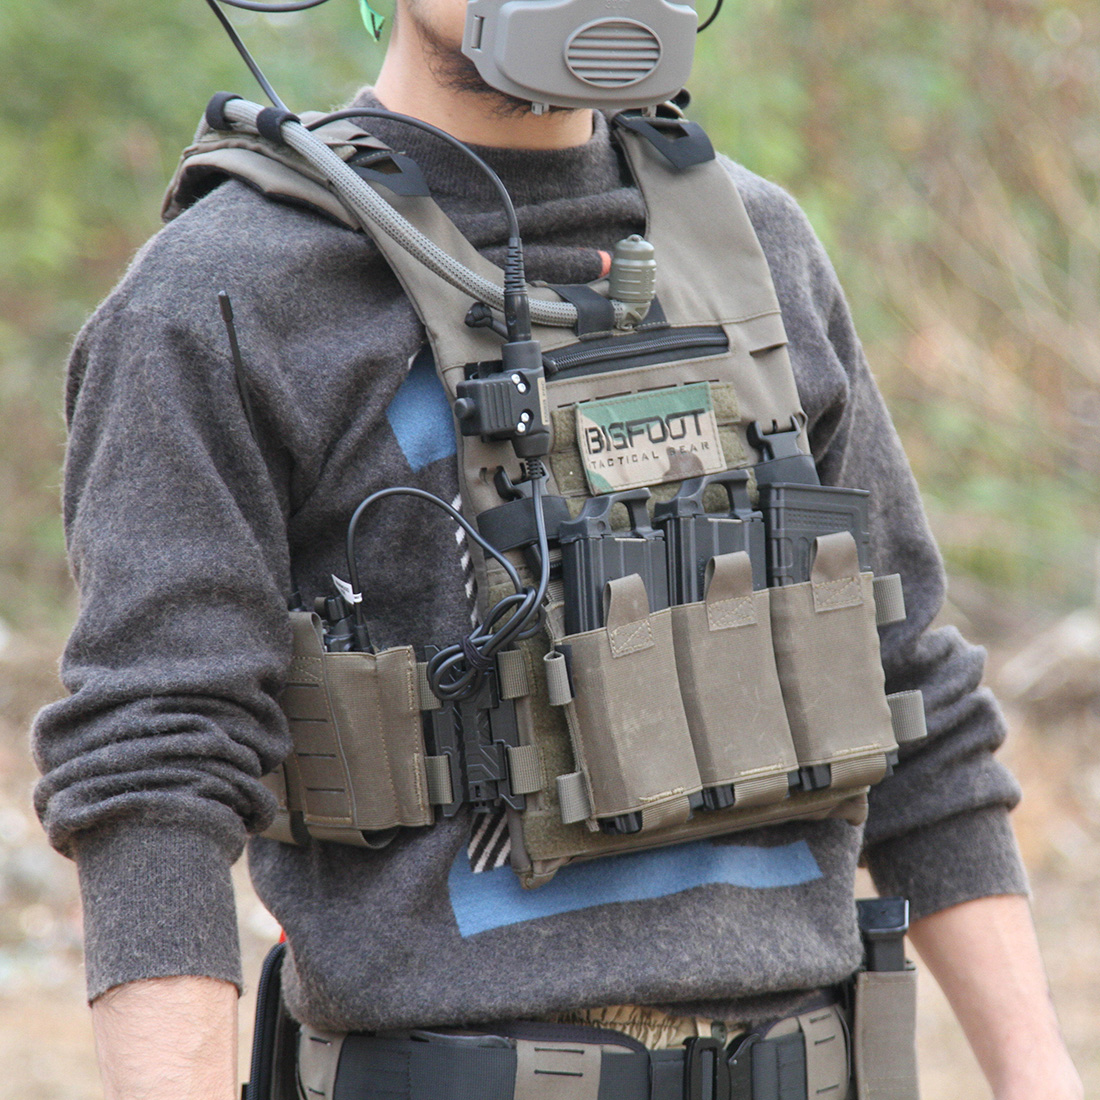 BF GTPC Quick Release Lightweight Tactical Hunting Vest Outdoor Shooting Range Training Vest For 2020 Airsoft - PSI Version